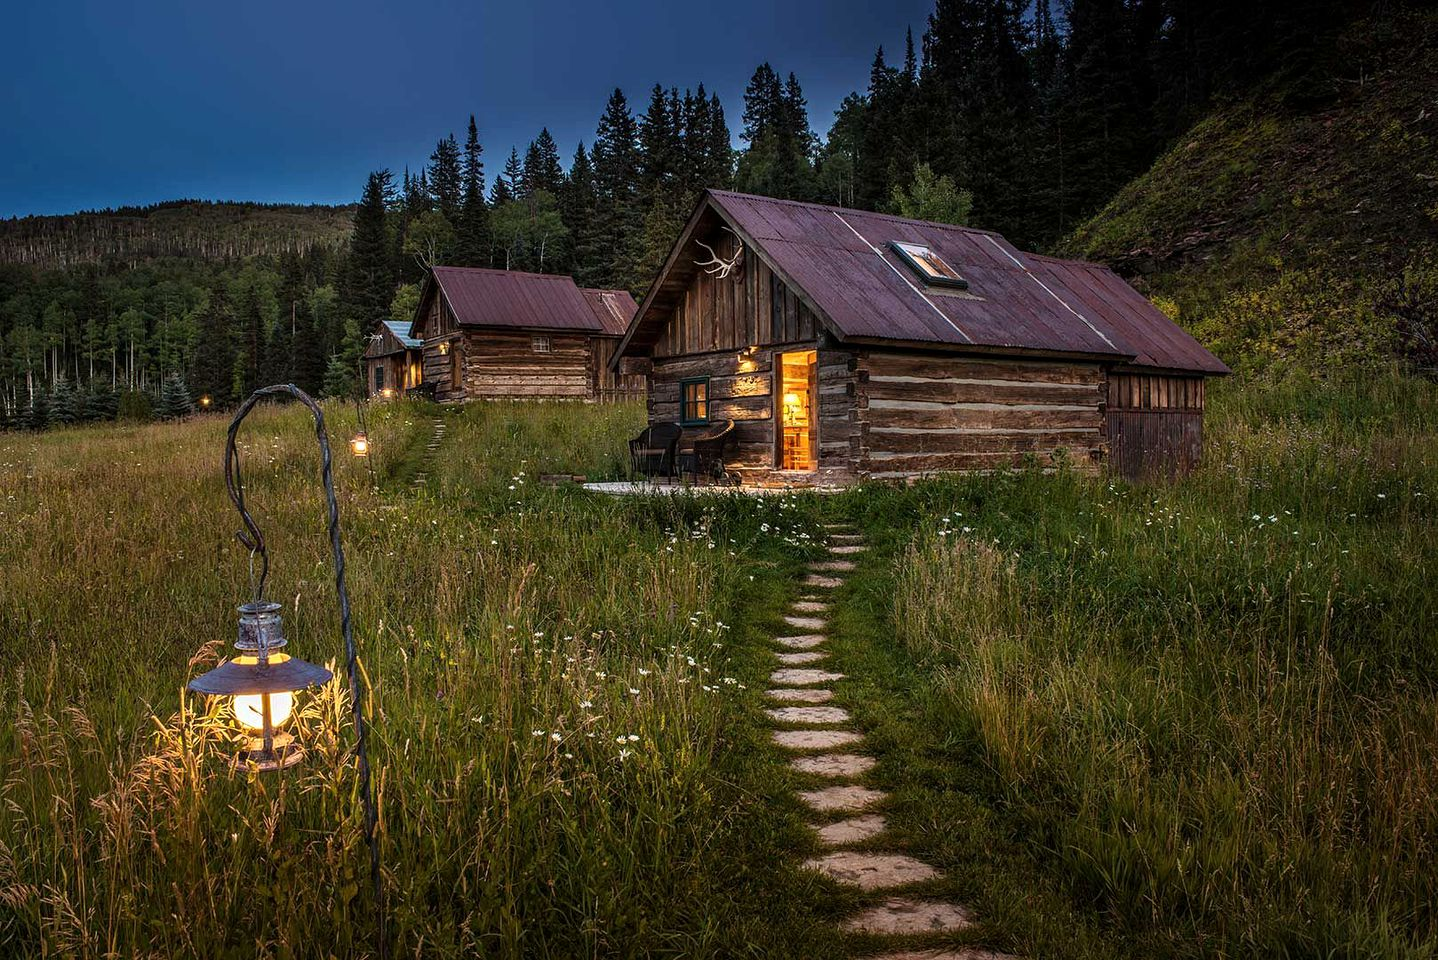 Cabins (Dolores, Colorado, United States)